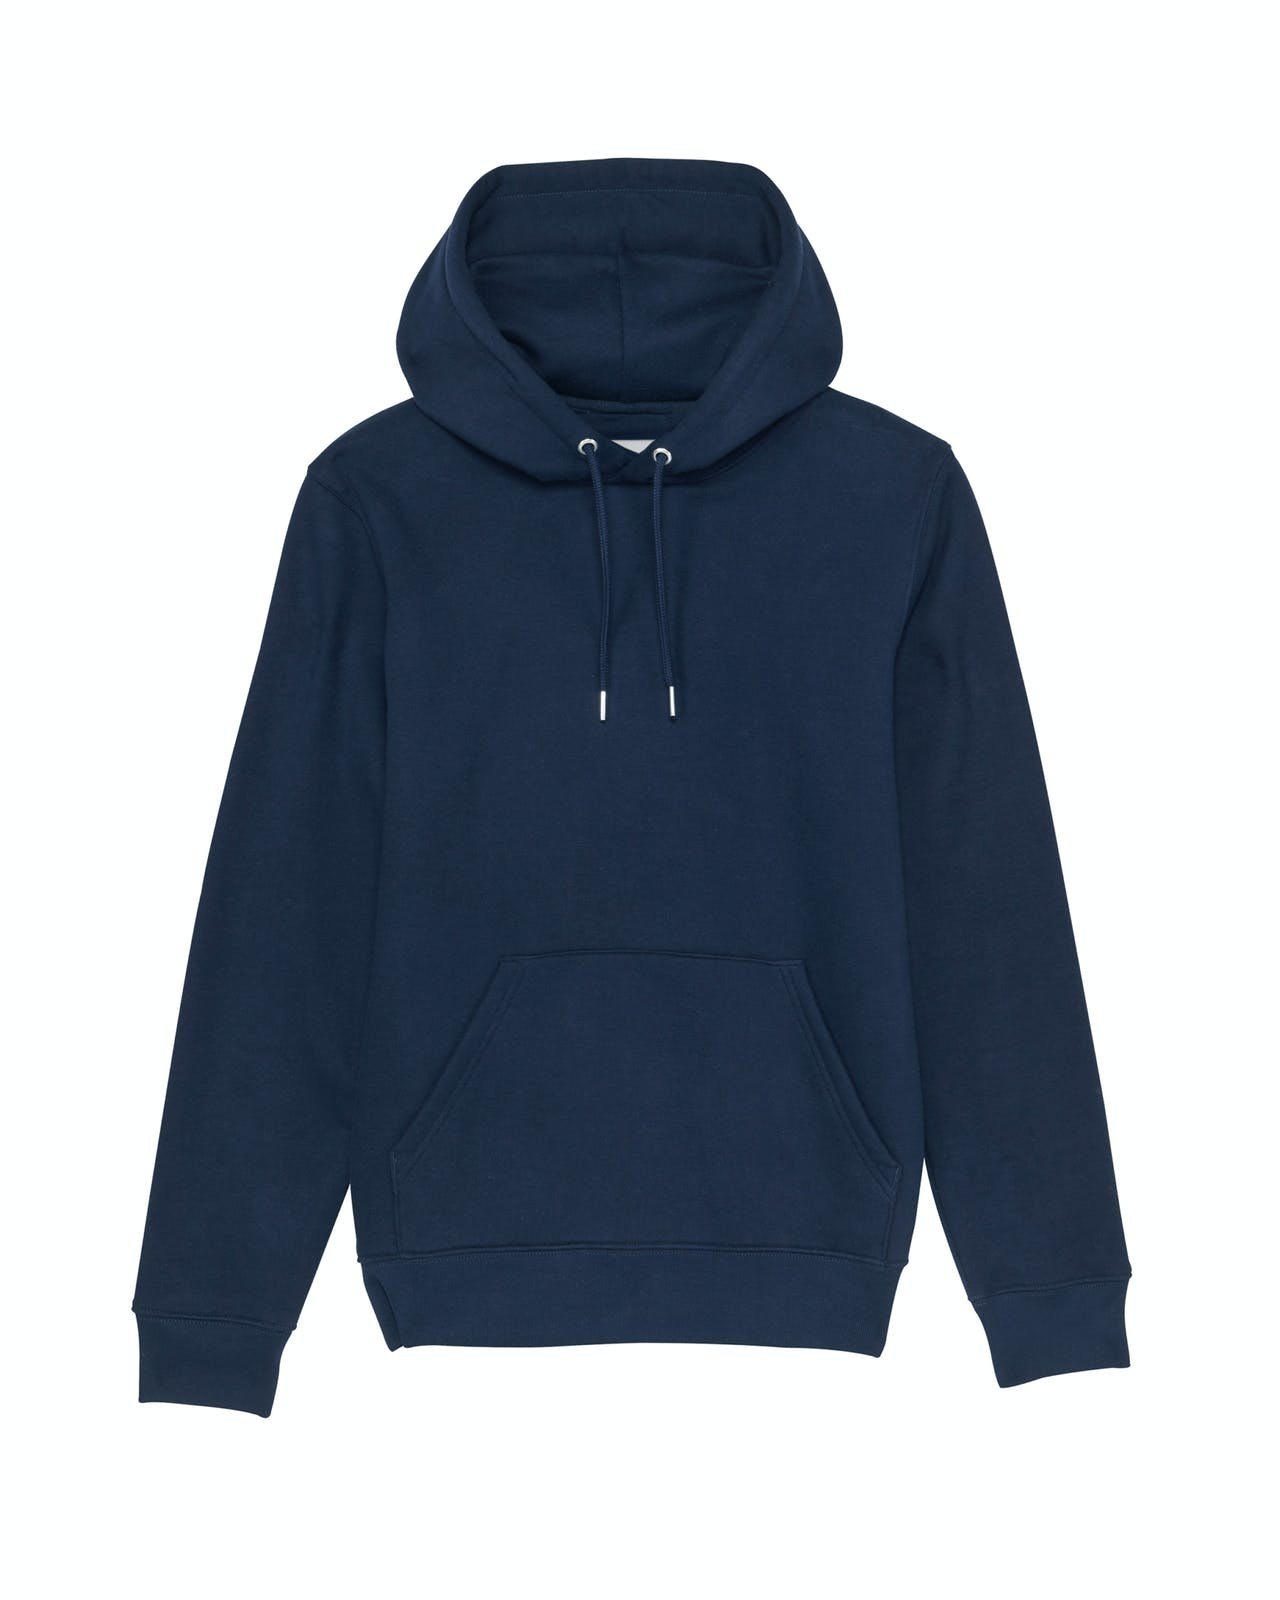 GOAT Apperal Goat Avery Unisex Hooded Sweat Navy